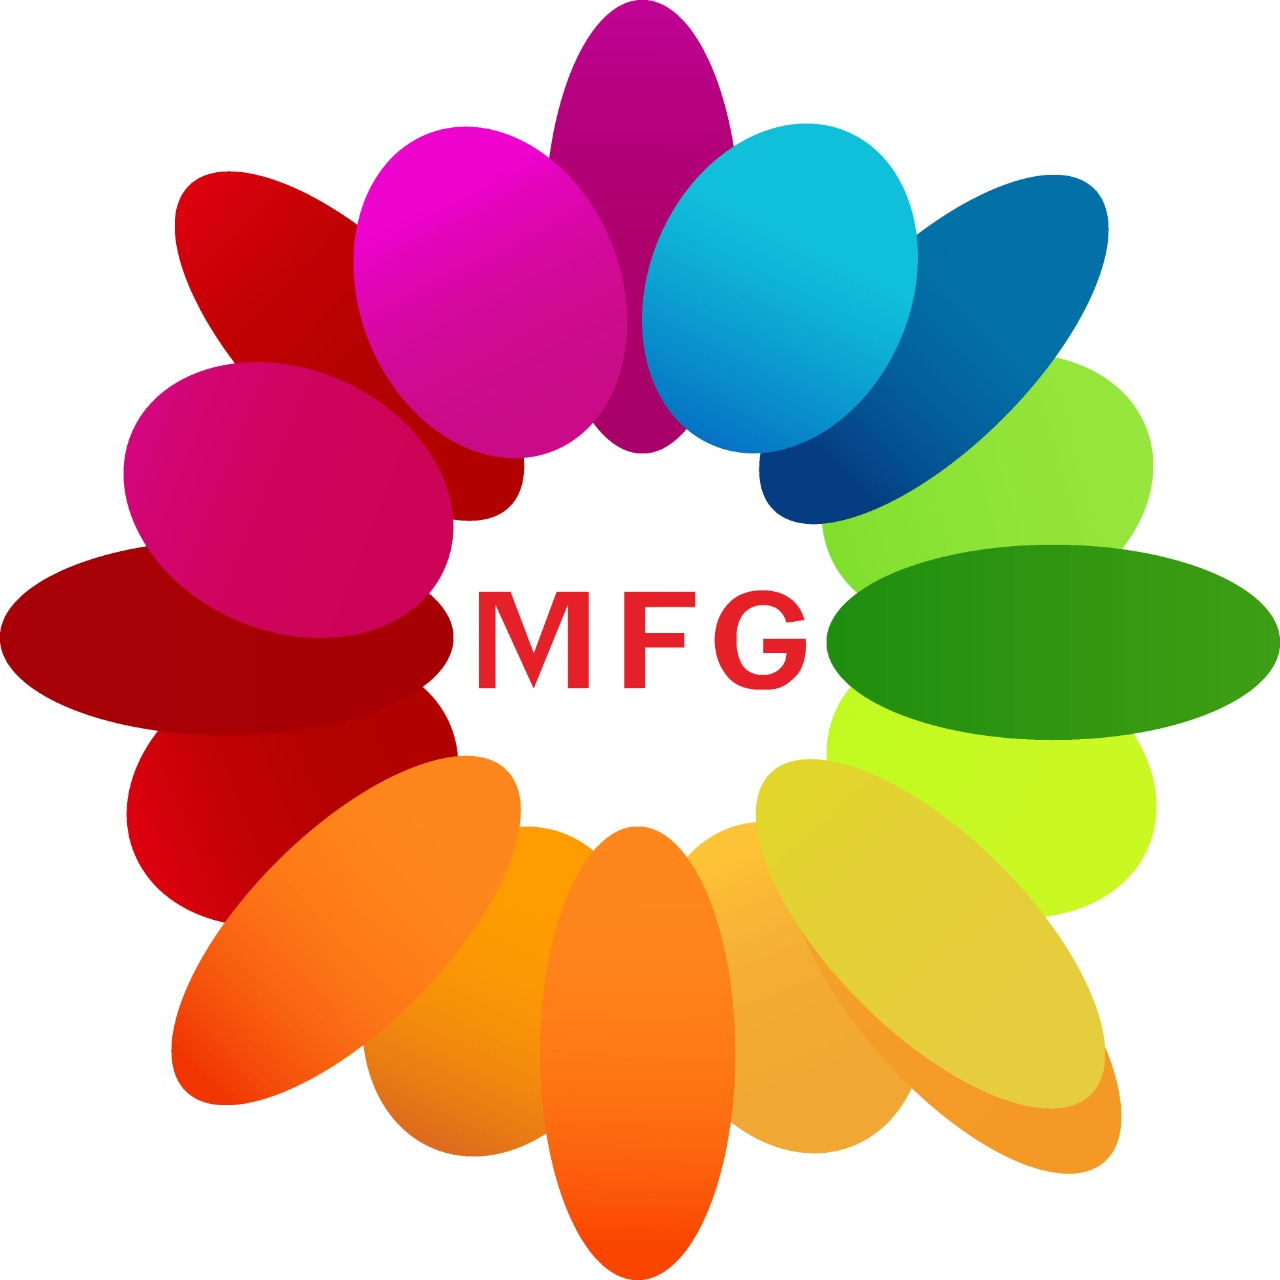 1 feet height teddy bear with 24 pc rocher ferrero chocolates with Half kg choco vanilla cake